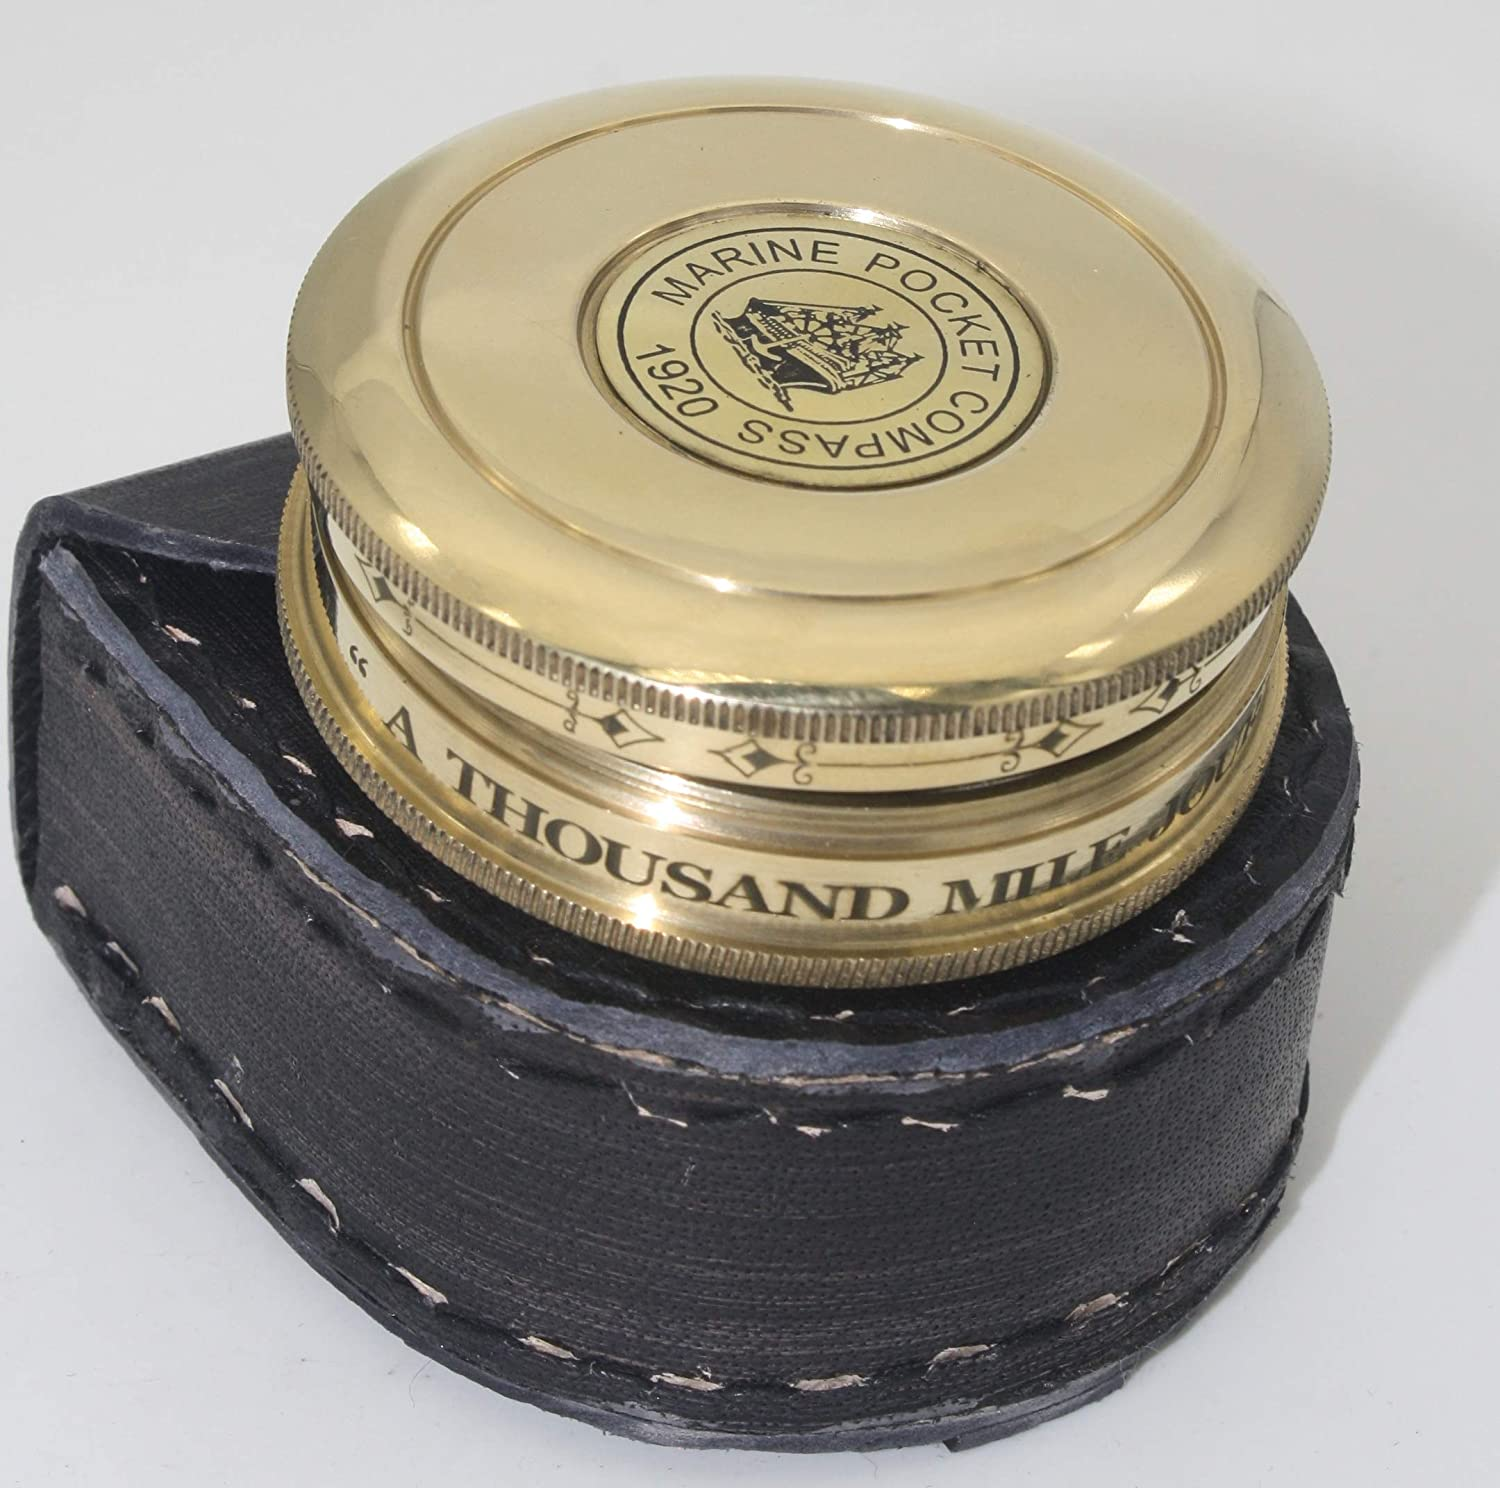 Delhi arts Robert Frost Poem Courier shipping free shipping Leather Compass case Engraved with Max 42% OFF